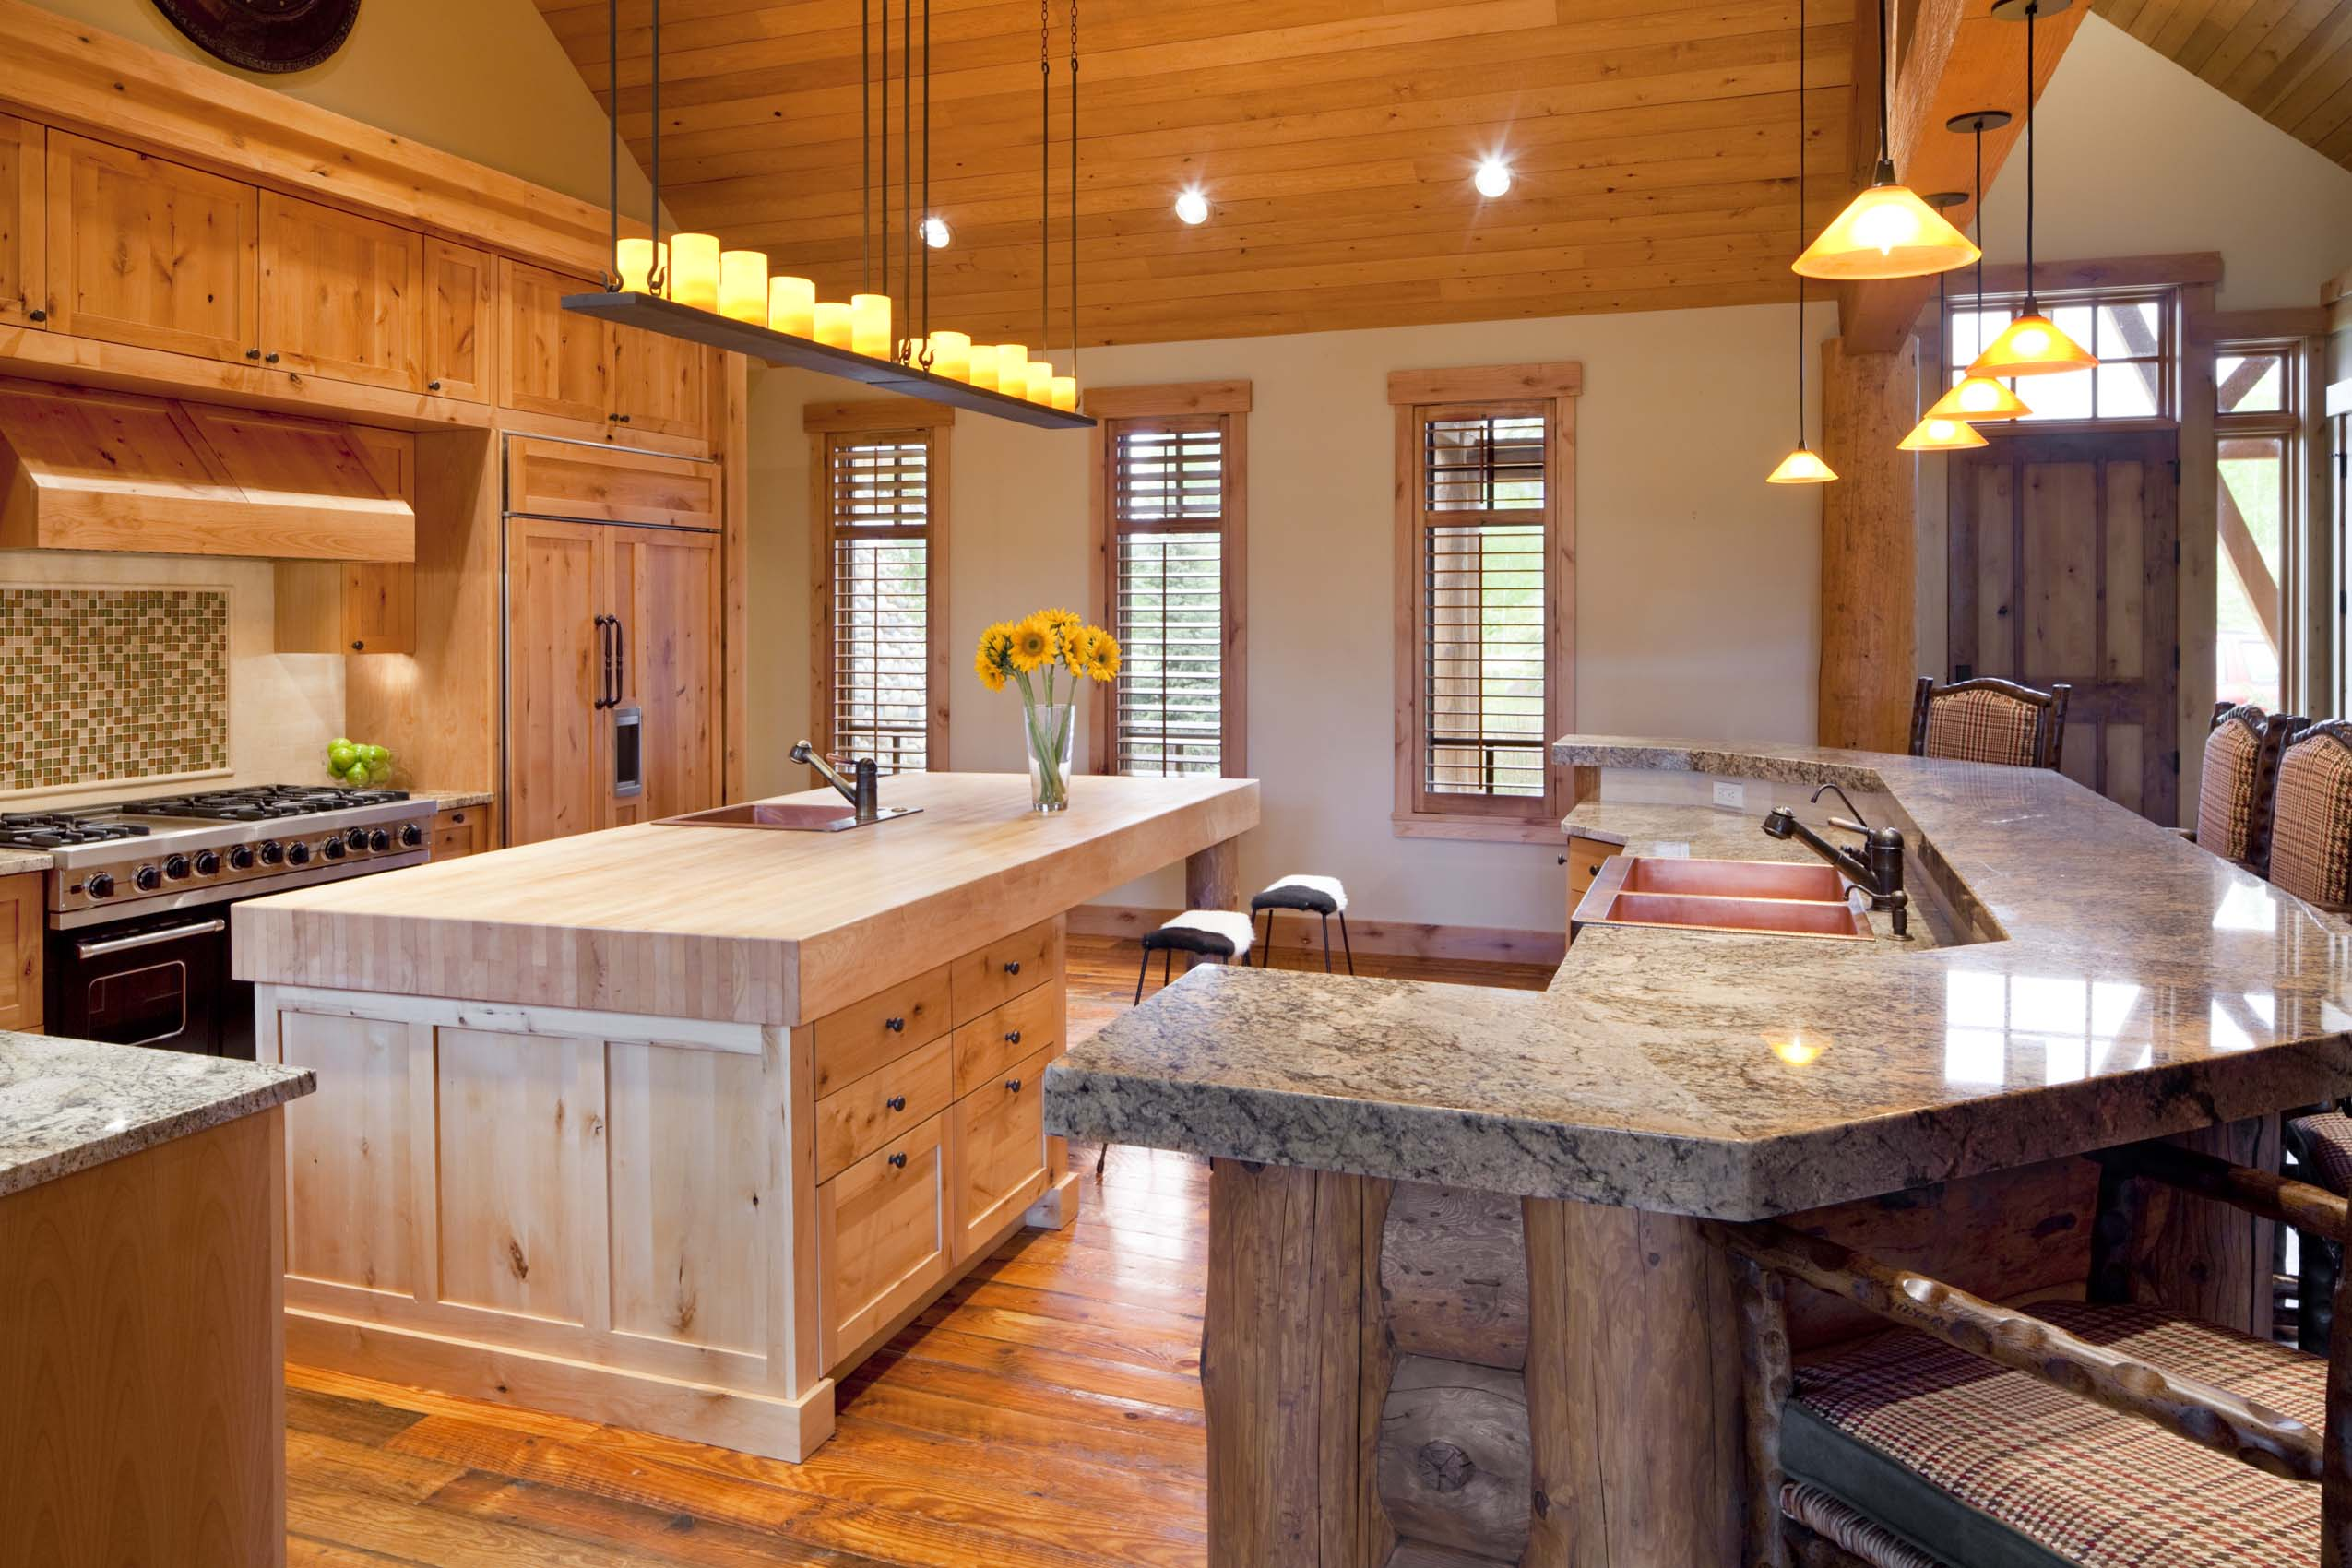 Grand Estates Auction Company Offering 32 Acre Woody Creek Luxury Retreat  At Absolute Auction On July 10th.Gourmet Kitchen At Woody Creek Mountain  Estate ...